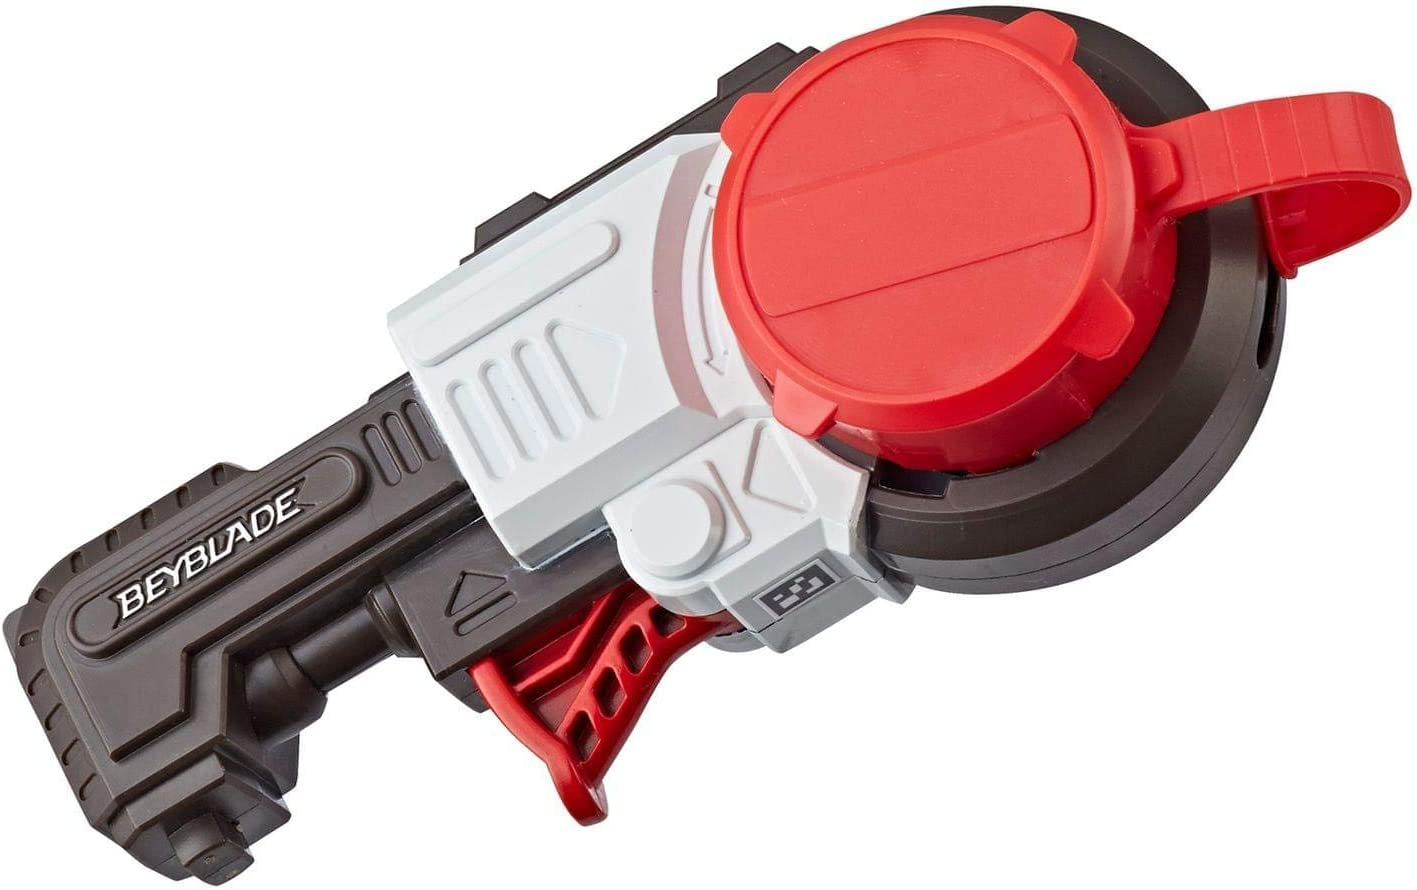 BEYBLADE Burst Turbo Slingshock Precision Strike Launcher - Compatible with Right/Left-Spin Tops, Age 8+ Toy